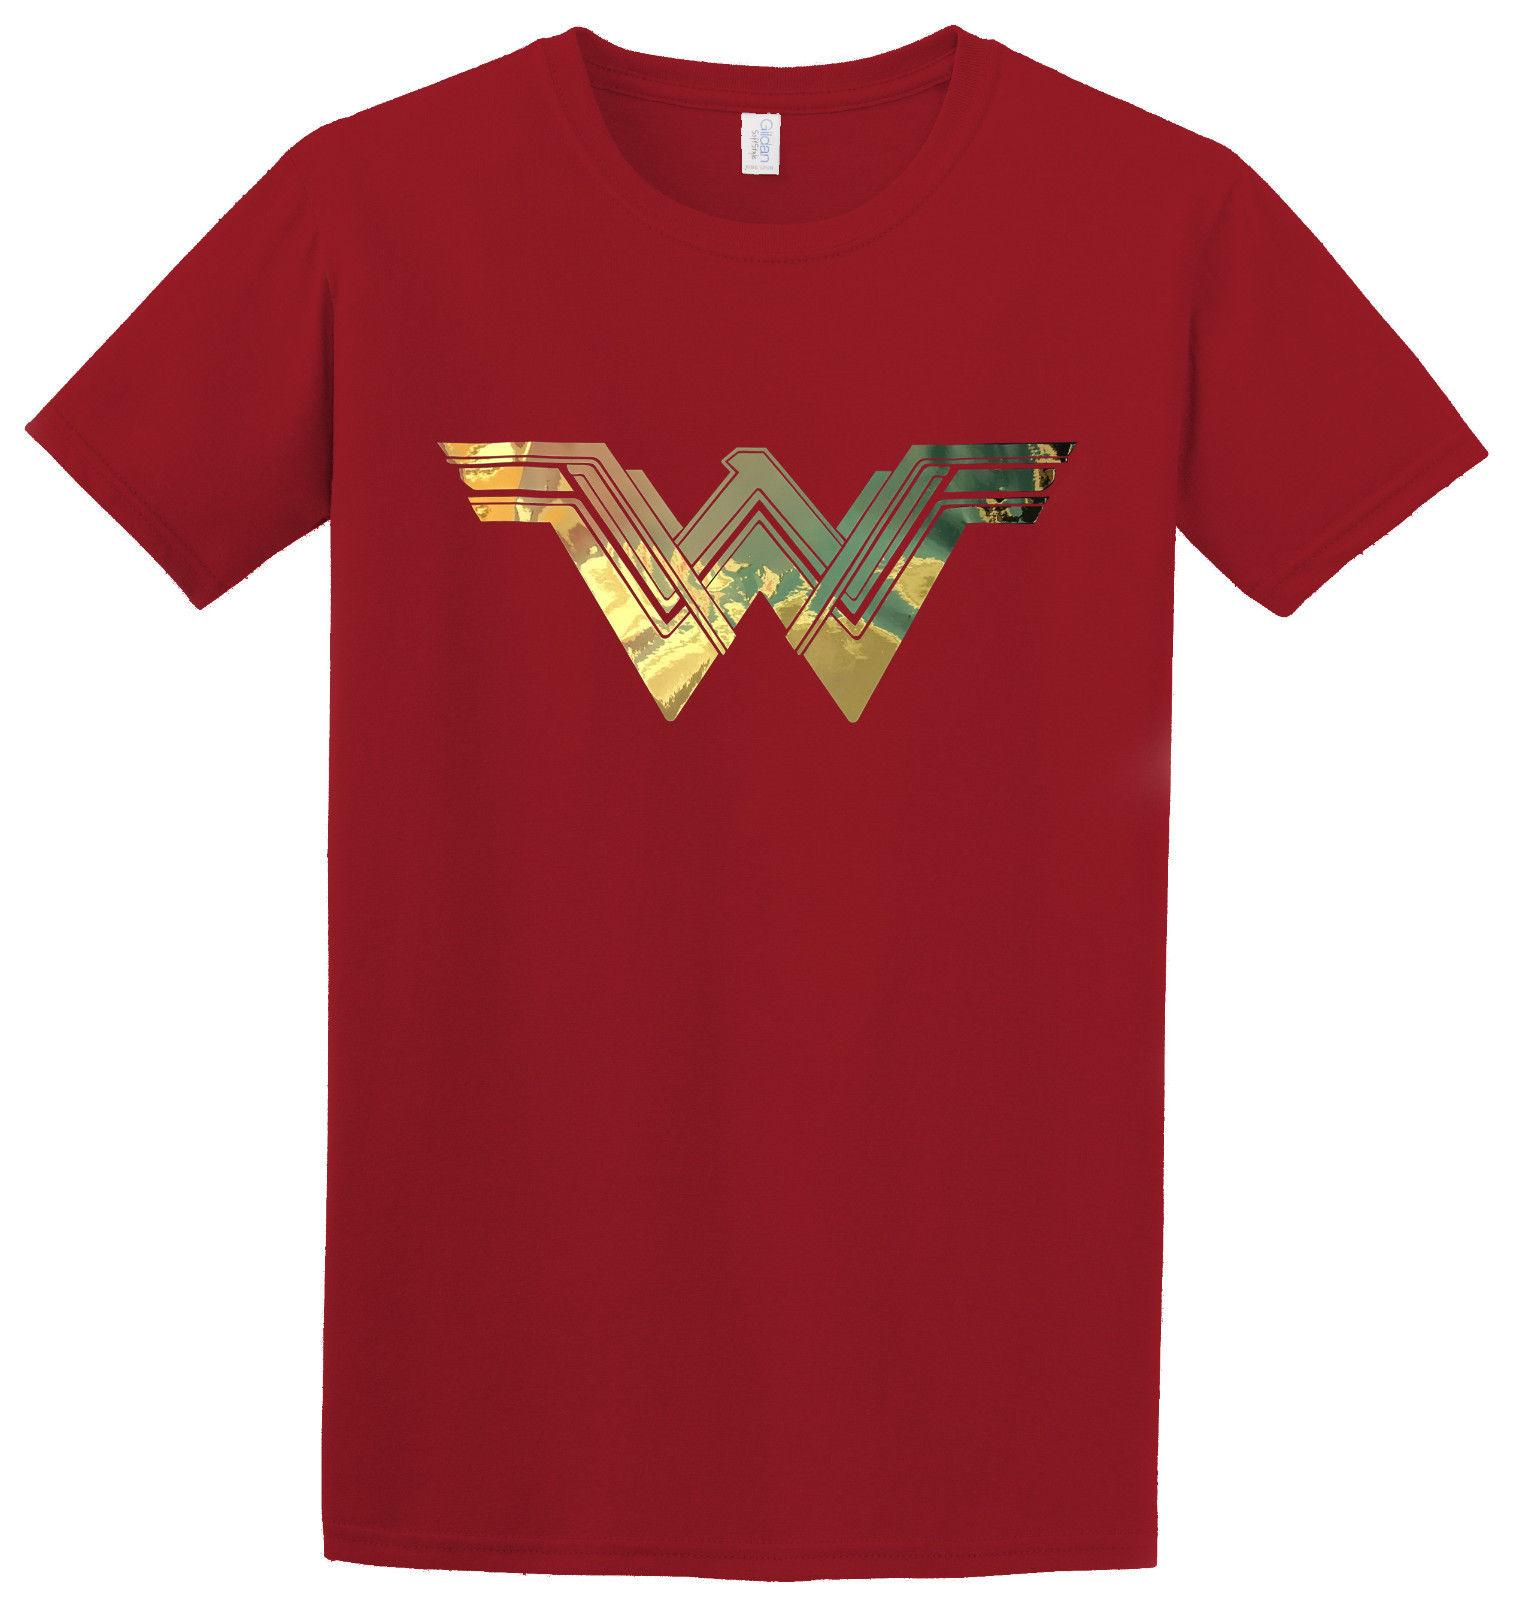 1e41bdf57 Details Zu Wonder Woman Justice League Gold Metallic Logo Movie Inspired T  Shirt Funny Unisex Casual Tee Gift Cool Tee Shirt T Shirt Online Buy From  ...